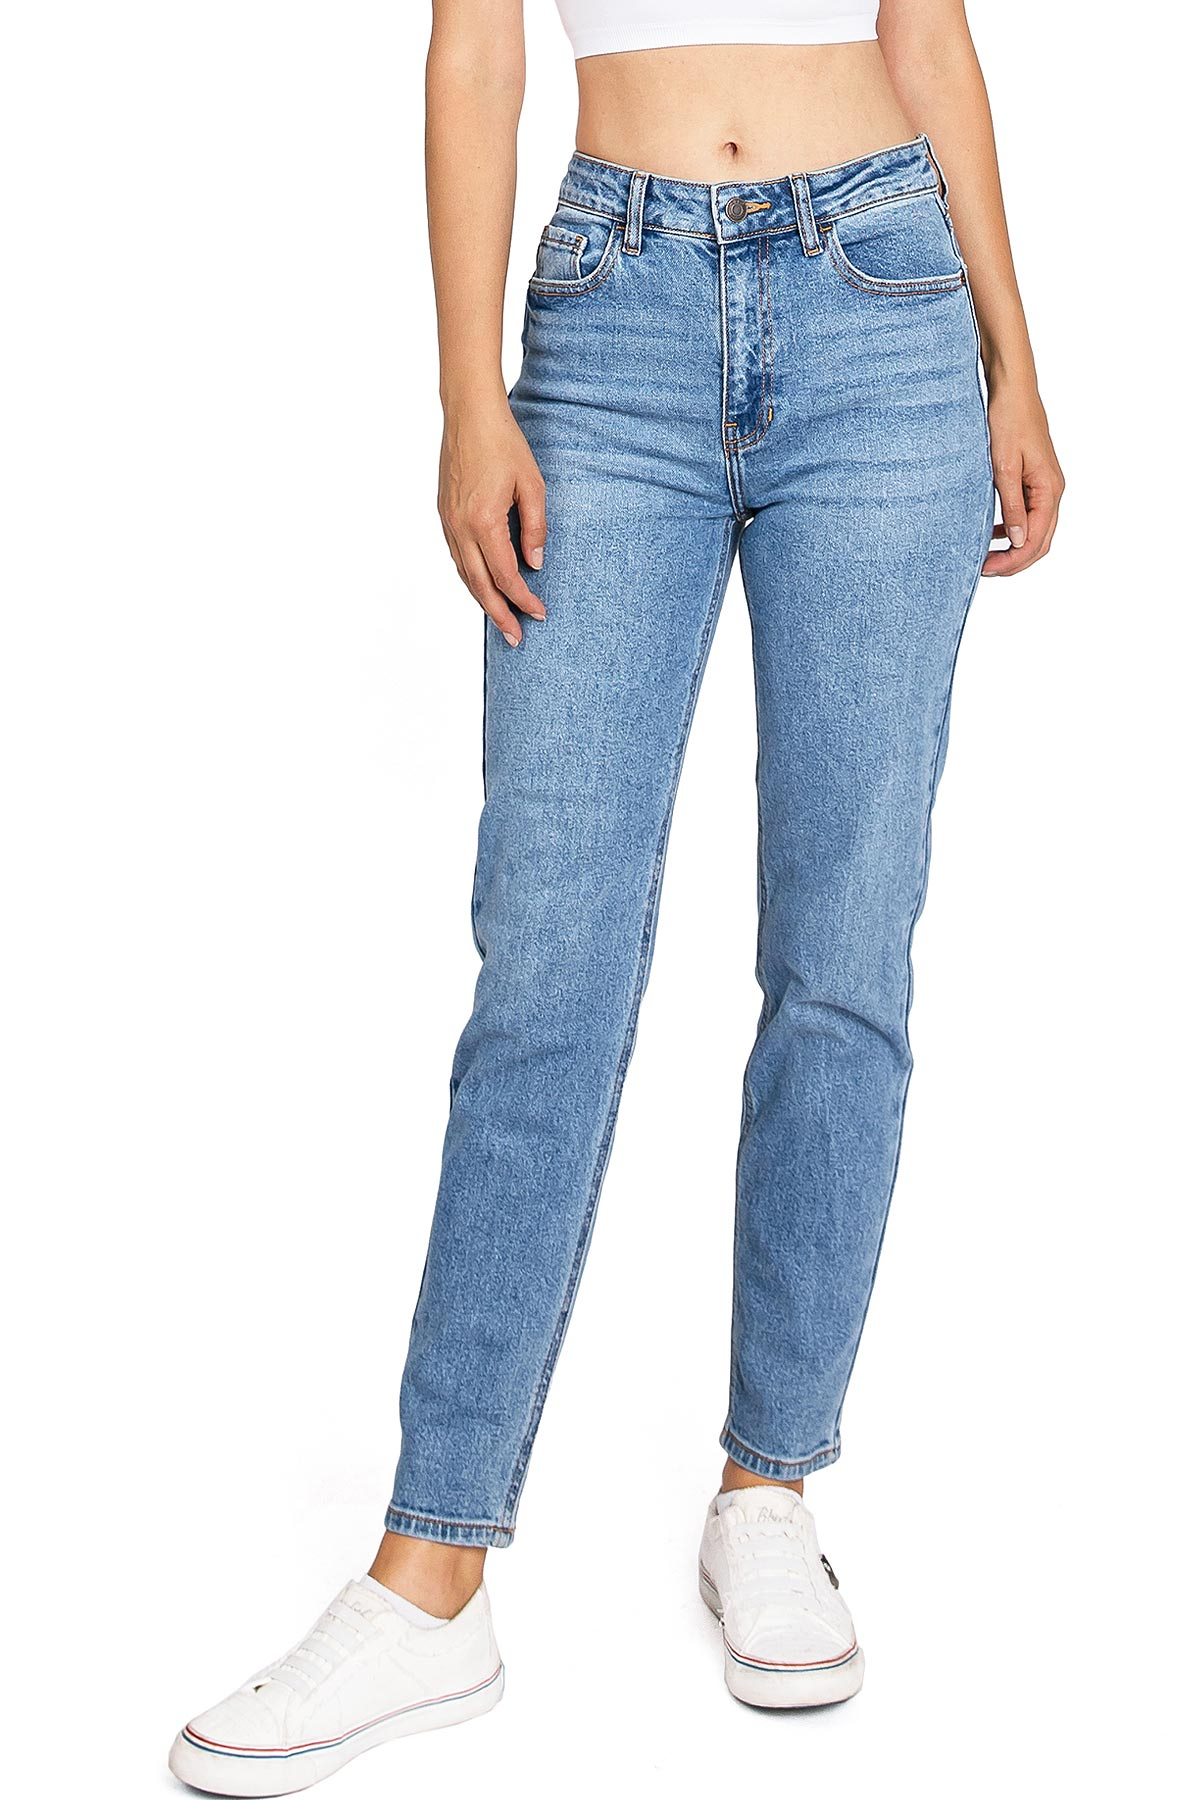 Image of Generation Mom Jeans